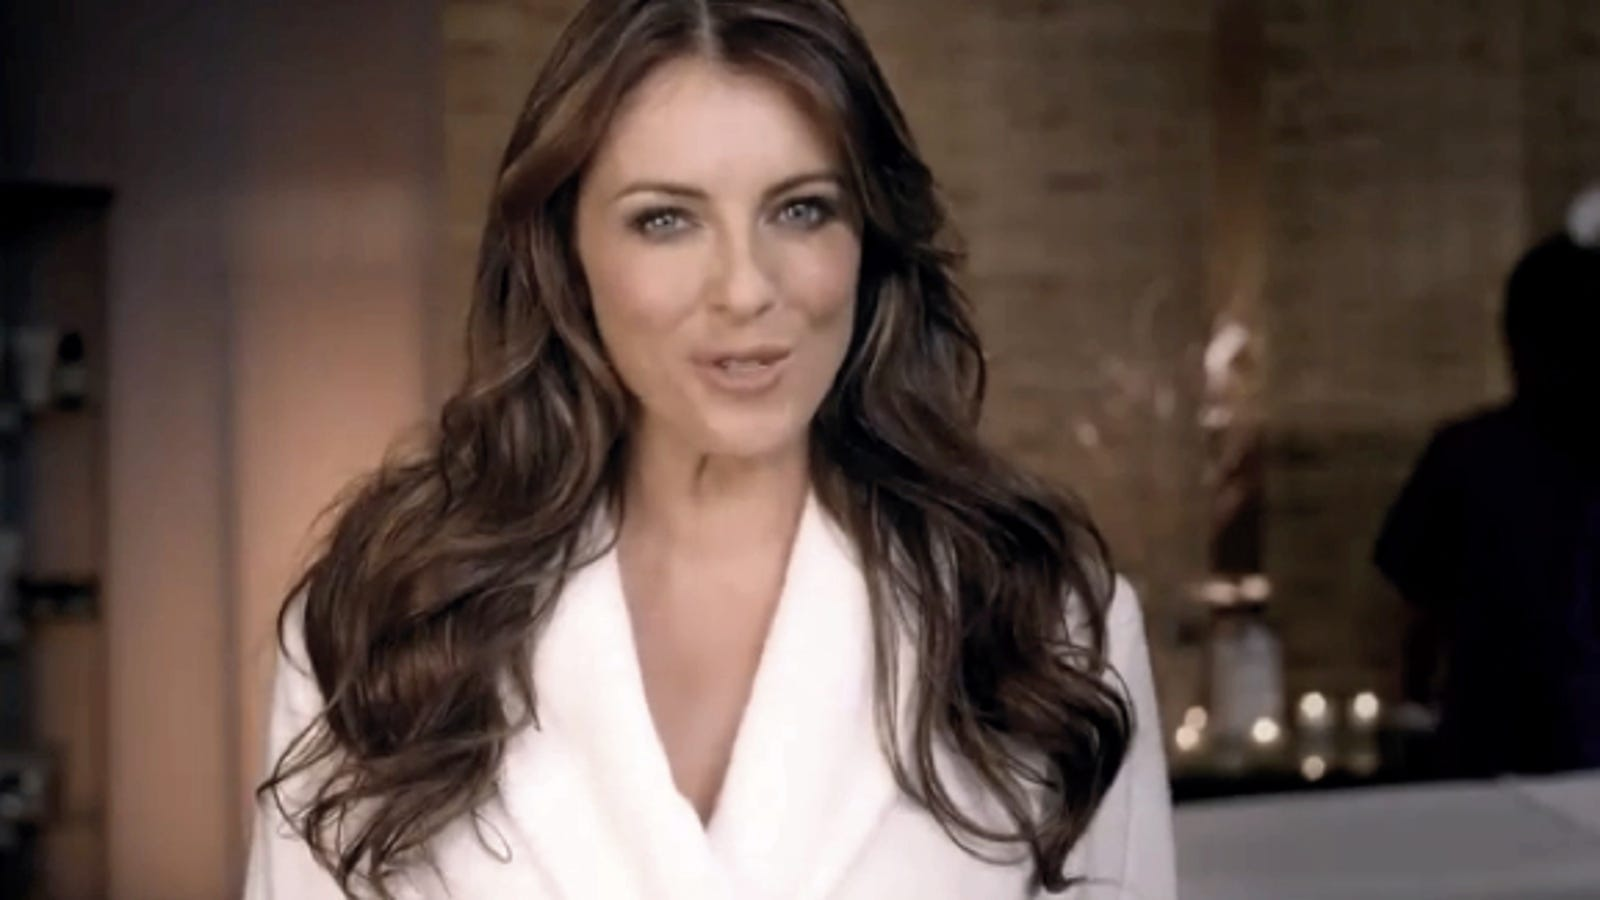 Elizabeth Hurley Hawks Groupon In Brazilian Wax Super Bowl Ad